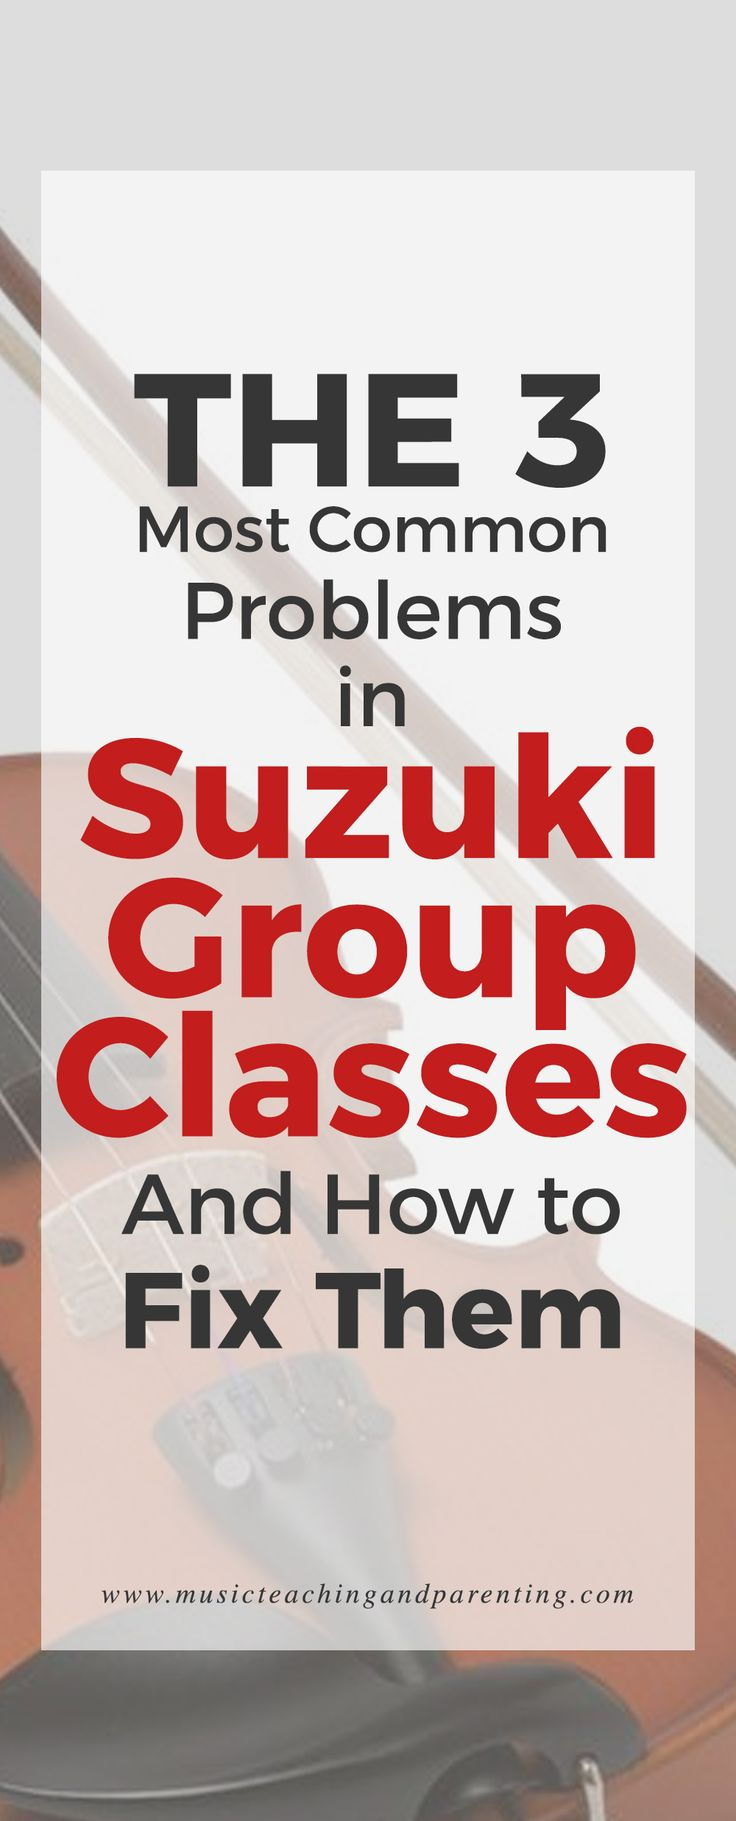 GREAT READ and very relatable to all SUZUKI teachers. I always love reading the posts on this blog-lots of Suzuki violin group class ideas and Suzuki violin practice games and tips,